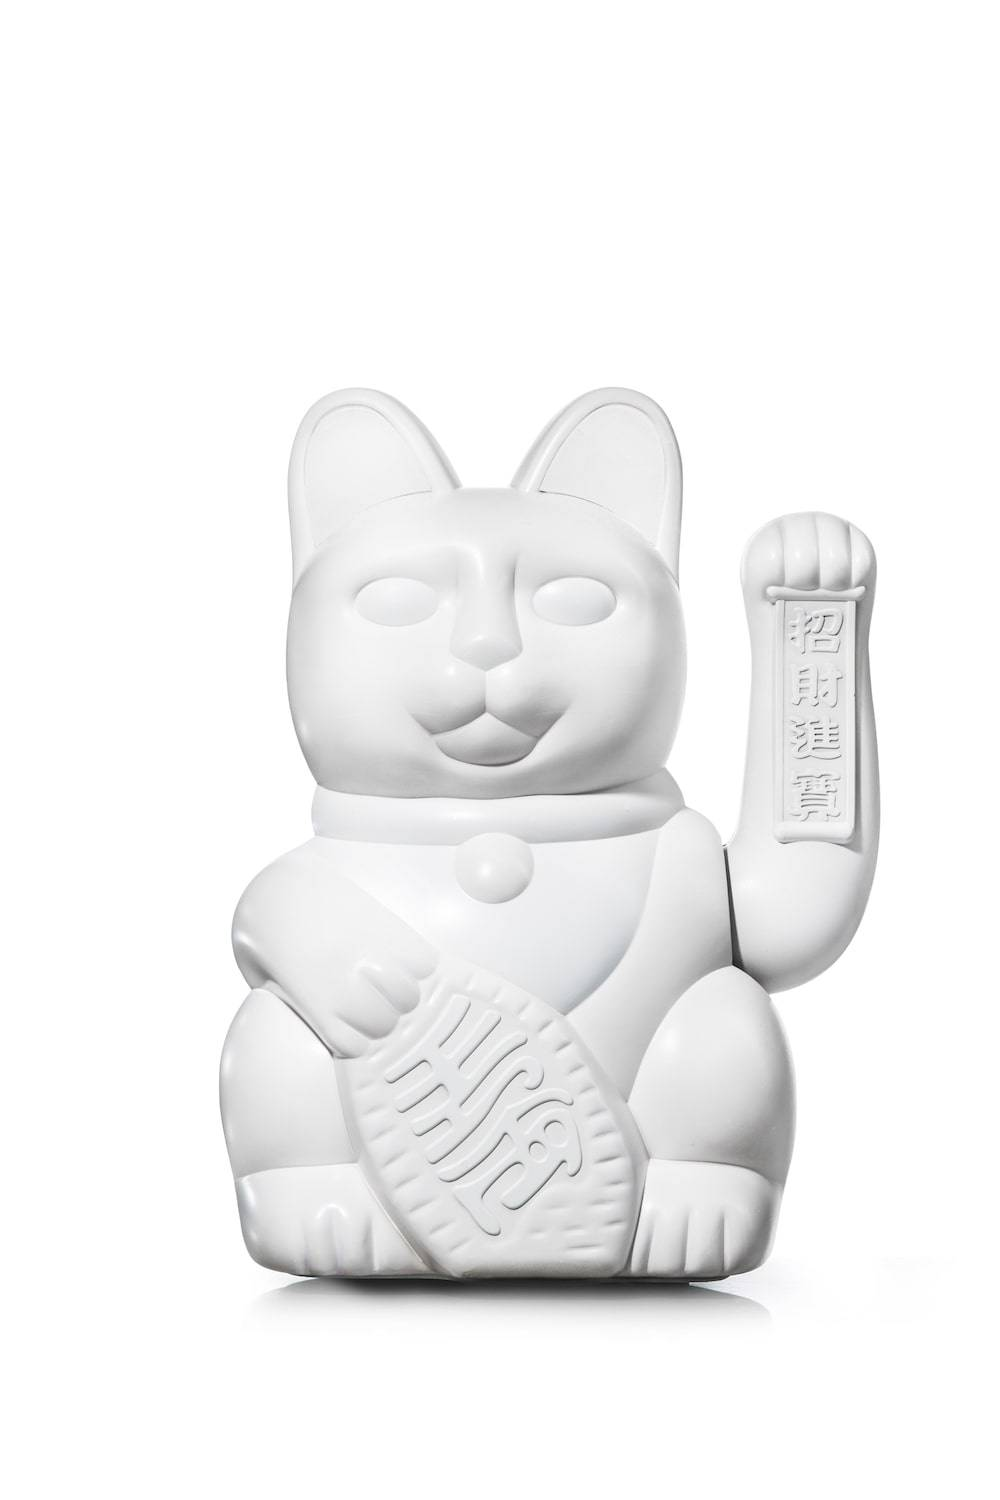 Image of   Gigantisk vinkekat - Maneki-Neko - Giant Lucky Cat (Hvid)